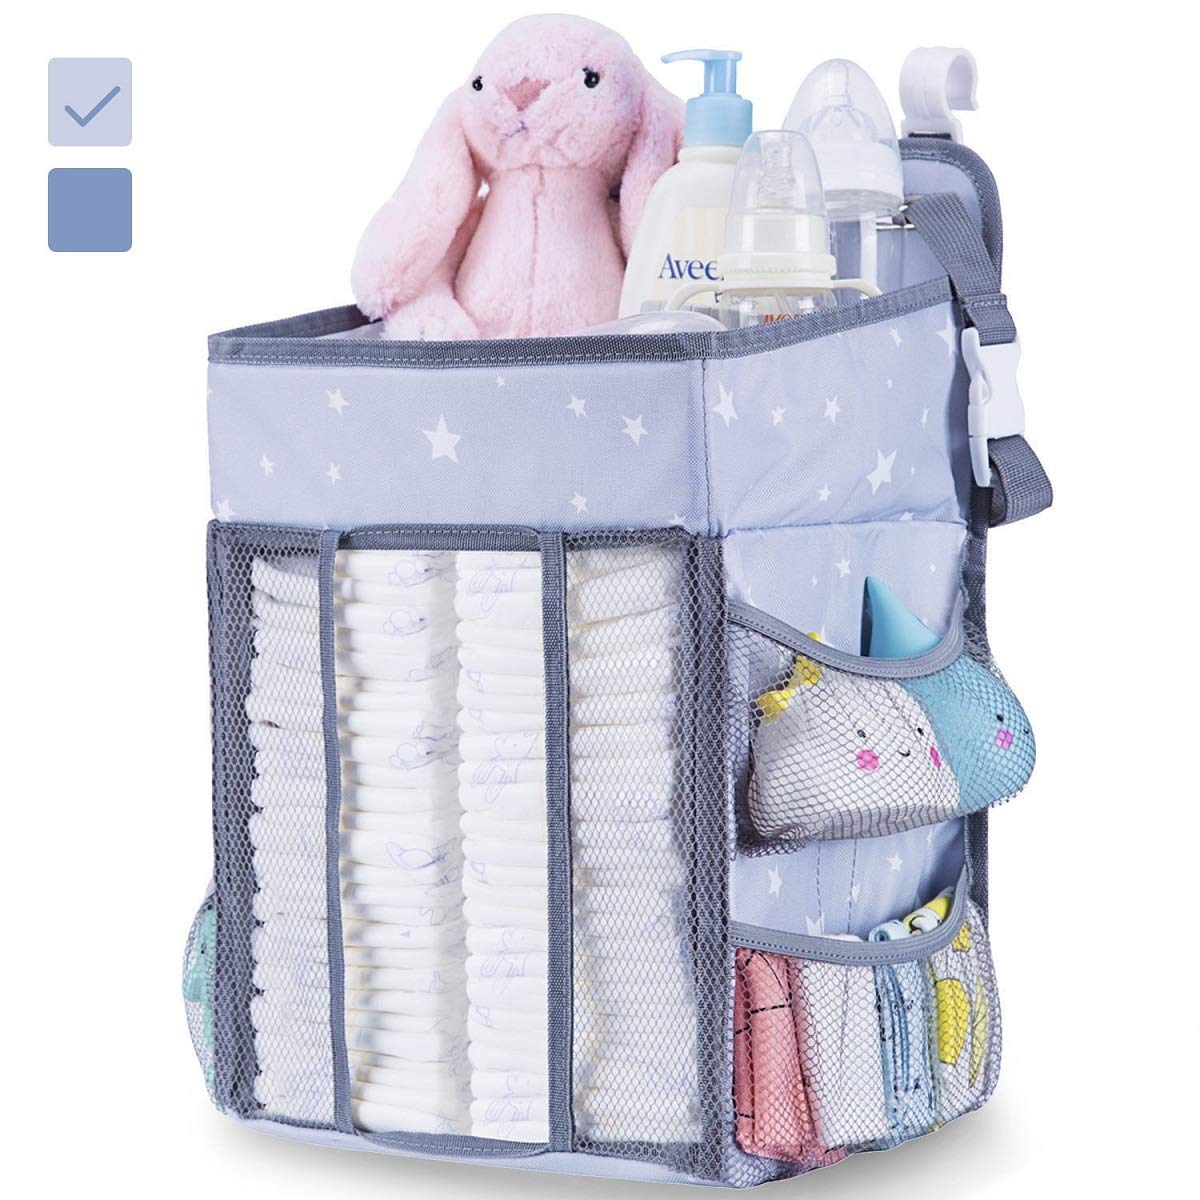 Diaper Caddy Organizer for Changing Table | Hanging Diaper Stacker for Nursery Organization | Crib Side Organizer | Newborn Baby Shower Gifts Light Grey by Shinok